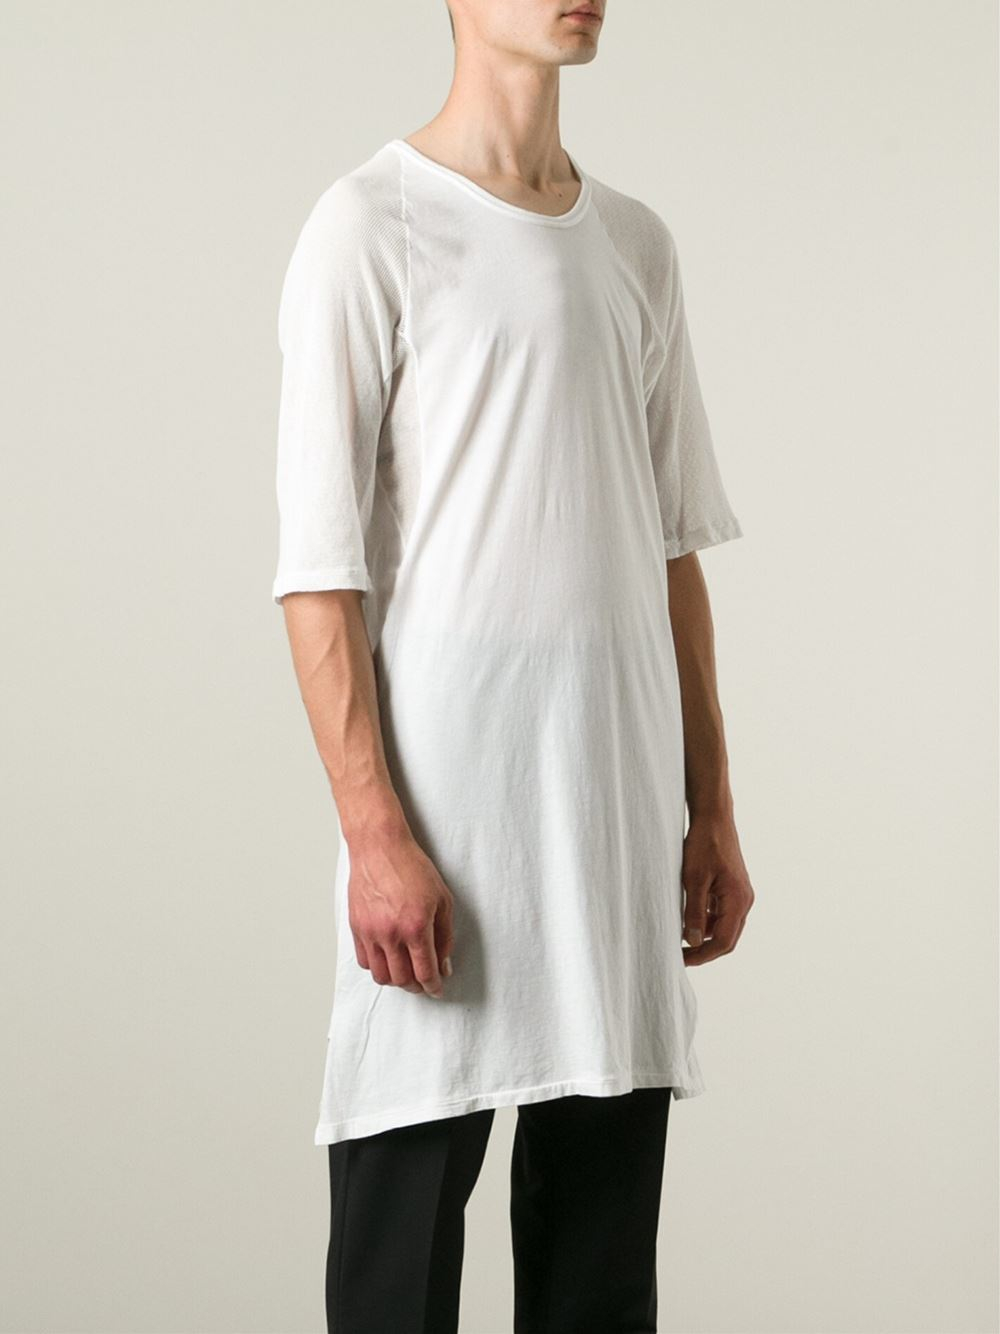 Long White Shirt | Artee Shirt